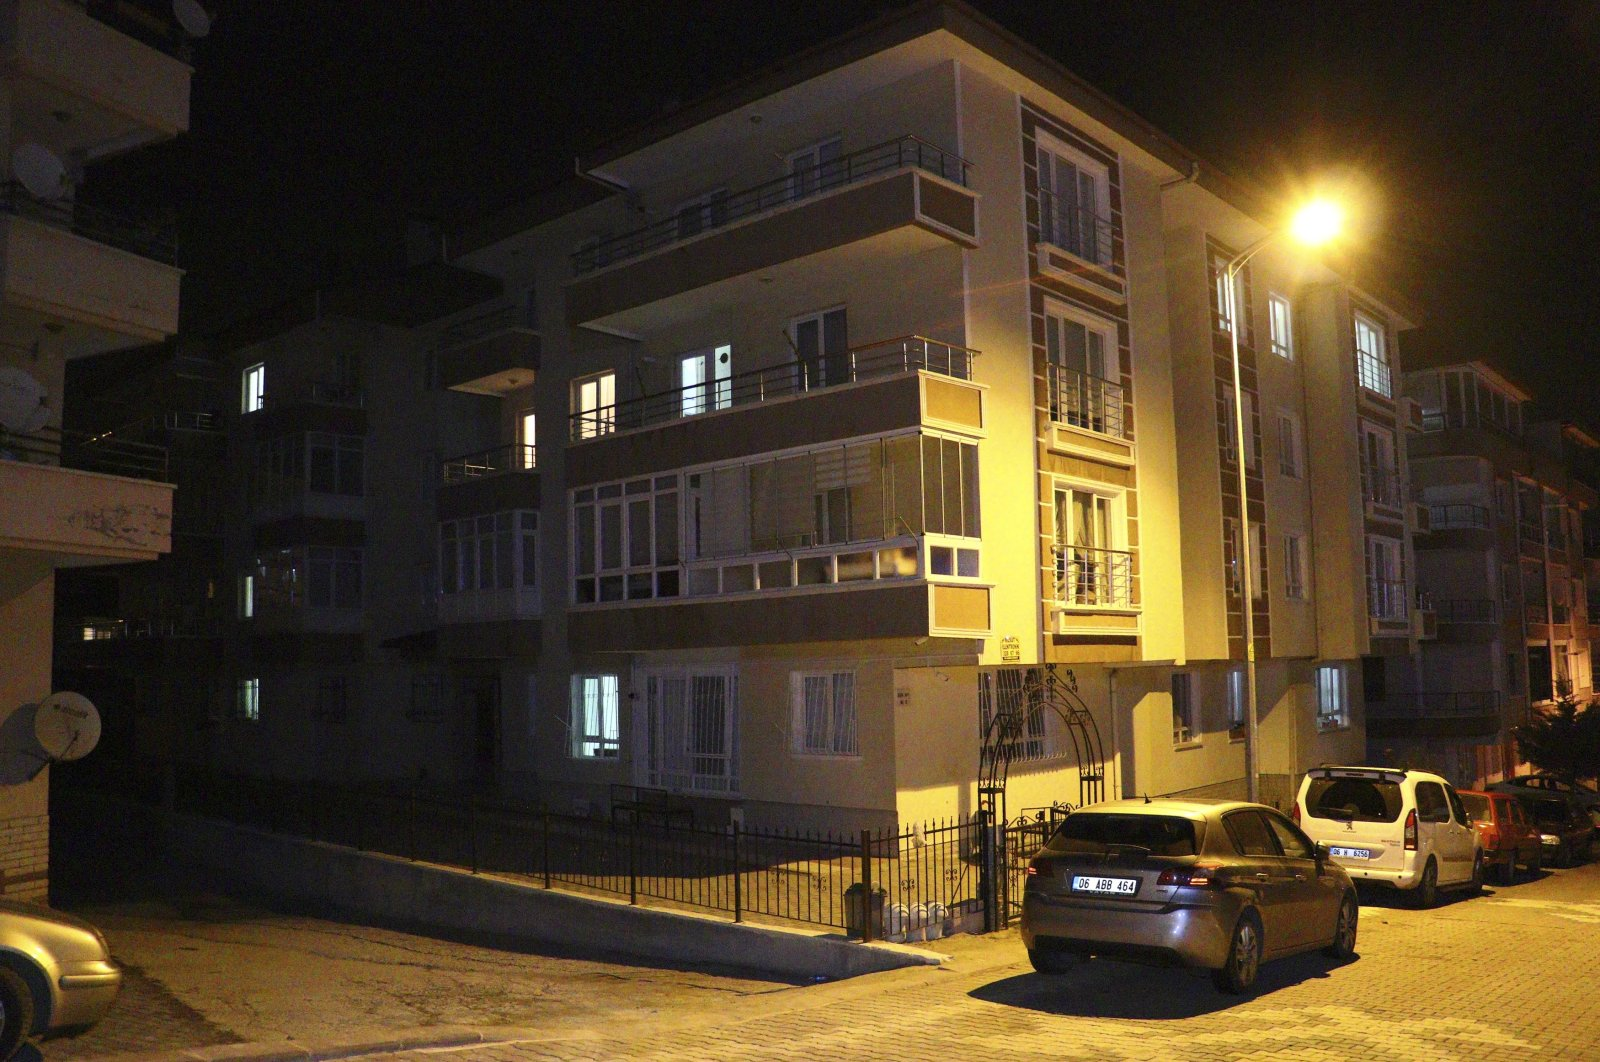 A view of the residence of Ibrahim Çolak, where the writer was recently found dead, in the capital Ankara, Turkey, Dec. 10, 2020. (DHA PHOTO)